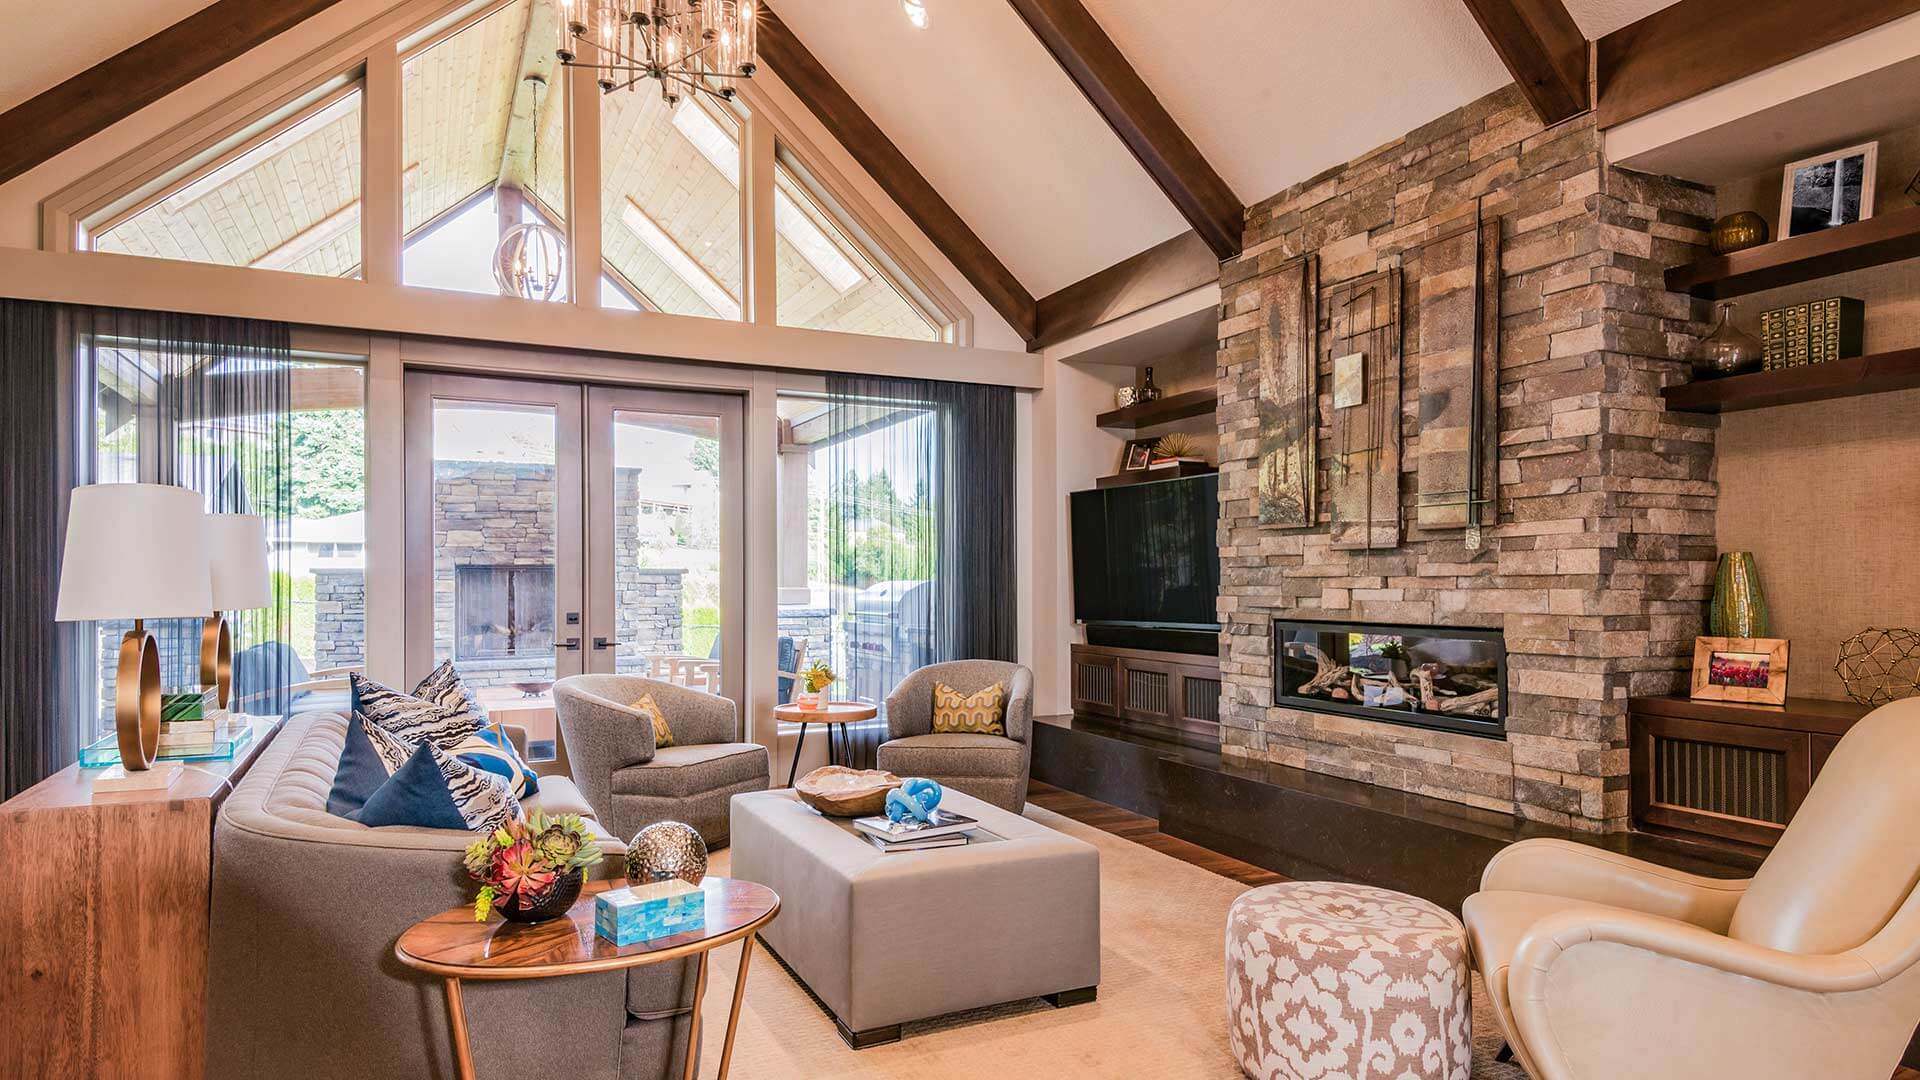 Modern living room featuring a slanted cathedral ceiling supported by solid wood rafters, and a fieldstone-veneer fireplace.